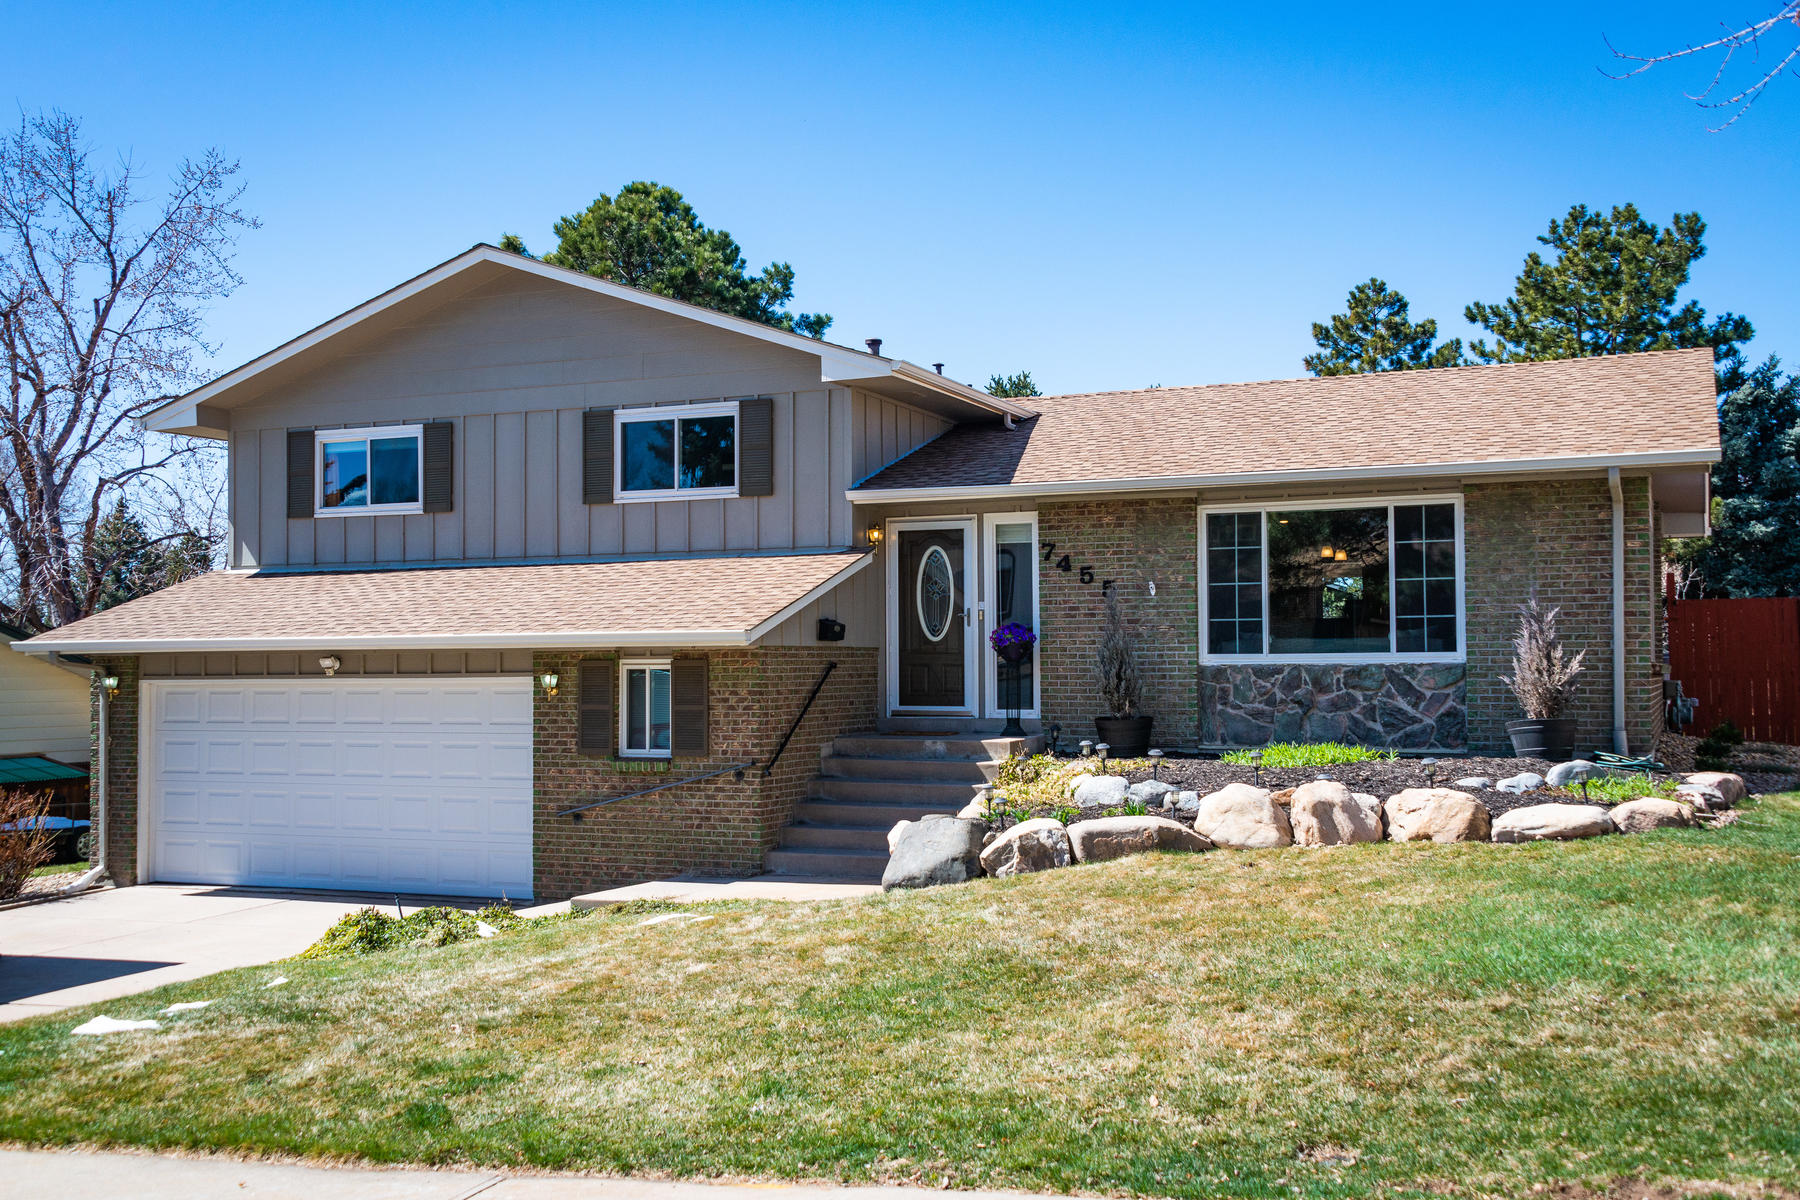 Single Family Homes for Sale at 7455 East Fremont Drive Centennial, Colorado 80112 United States